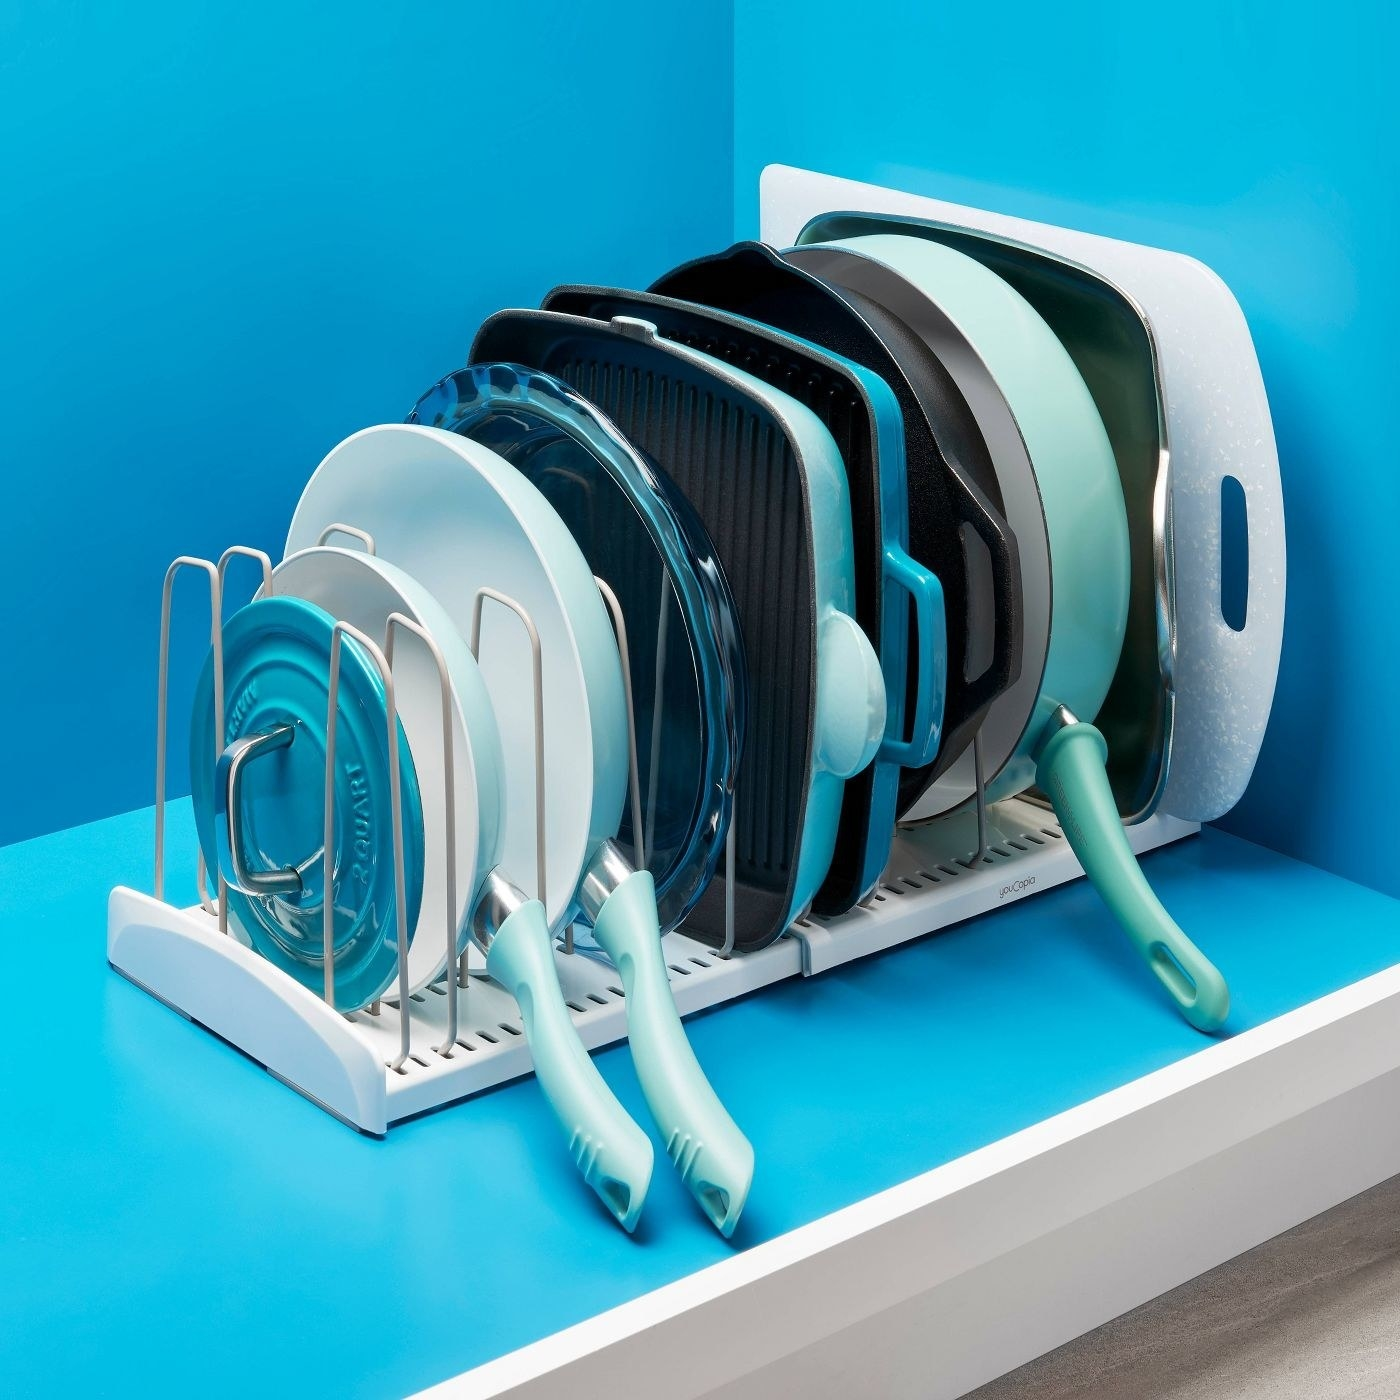 Theexpandable cookware rack